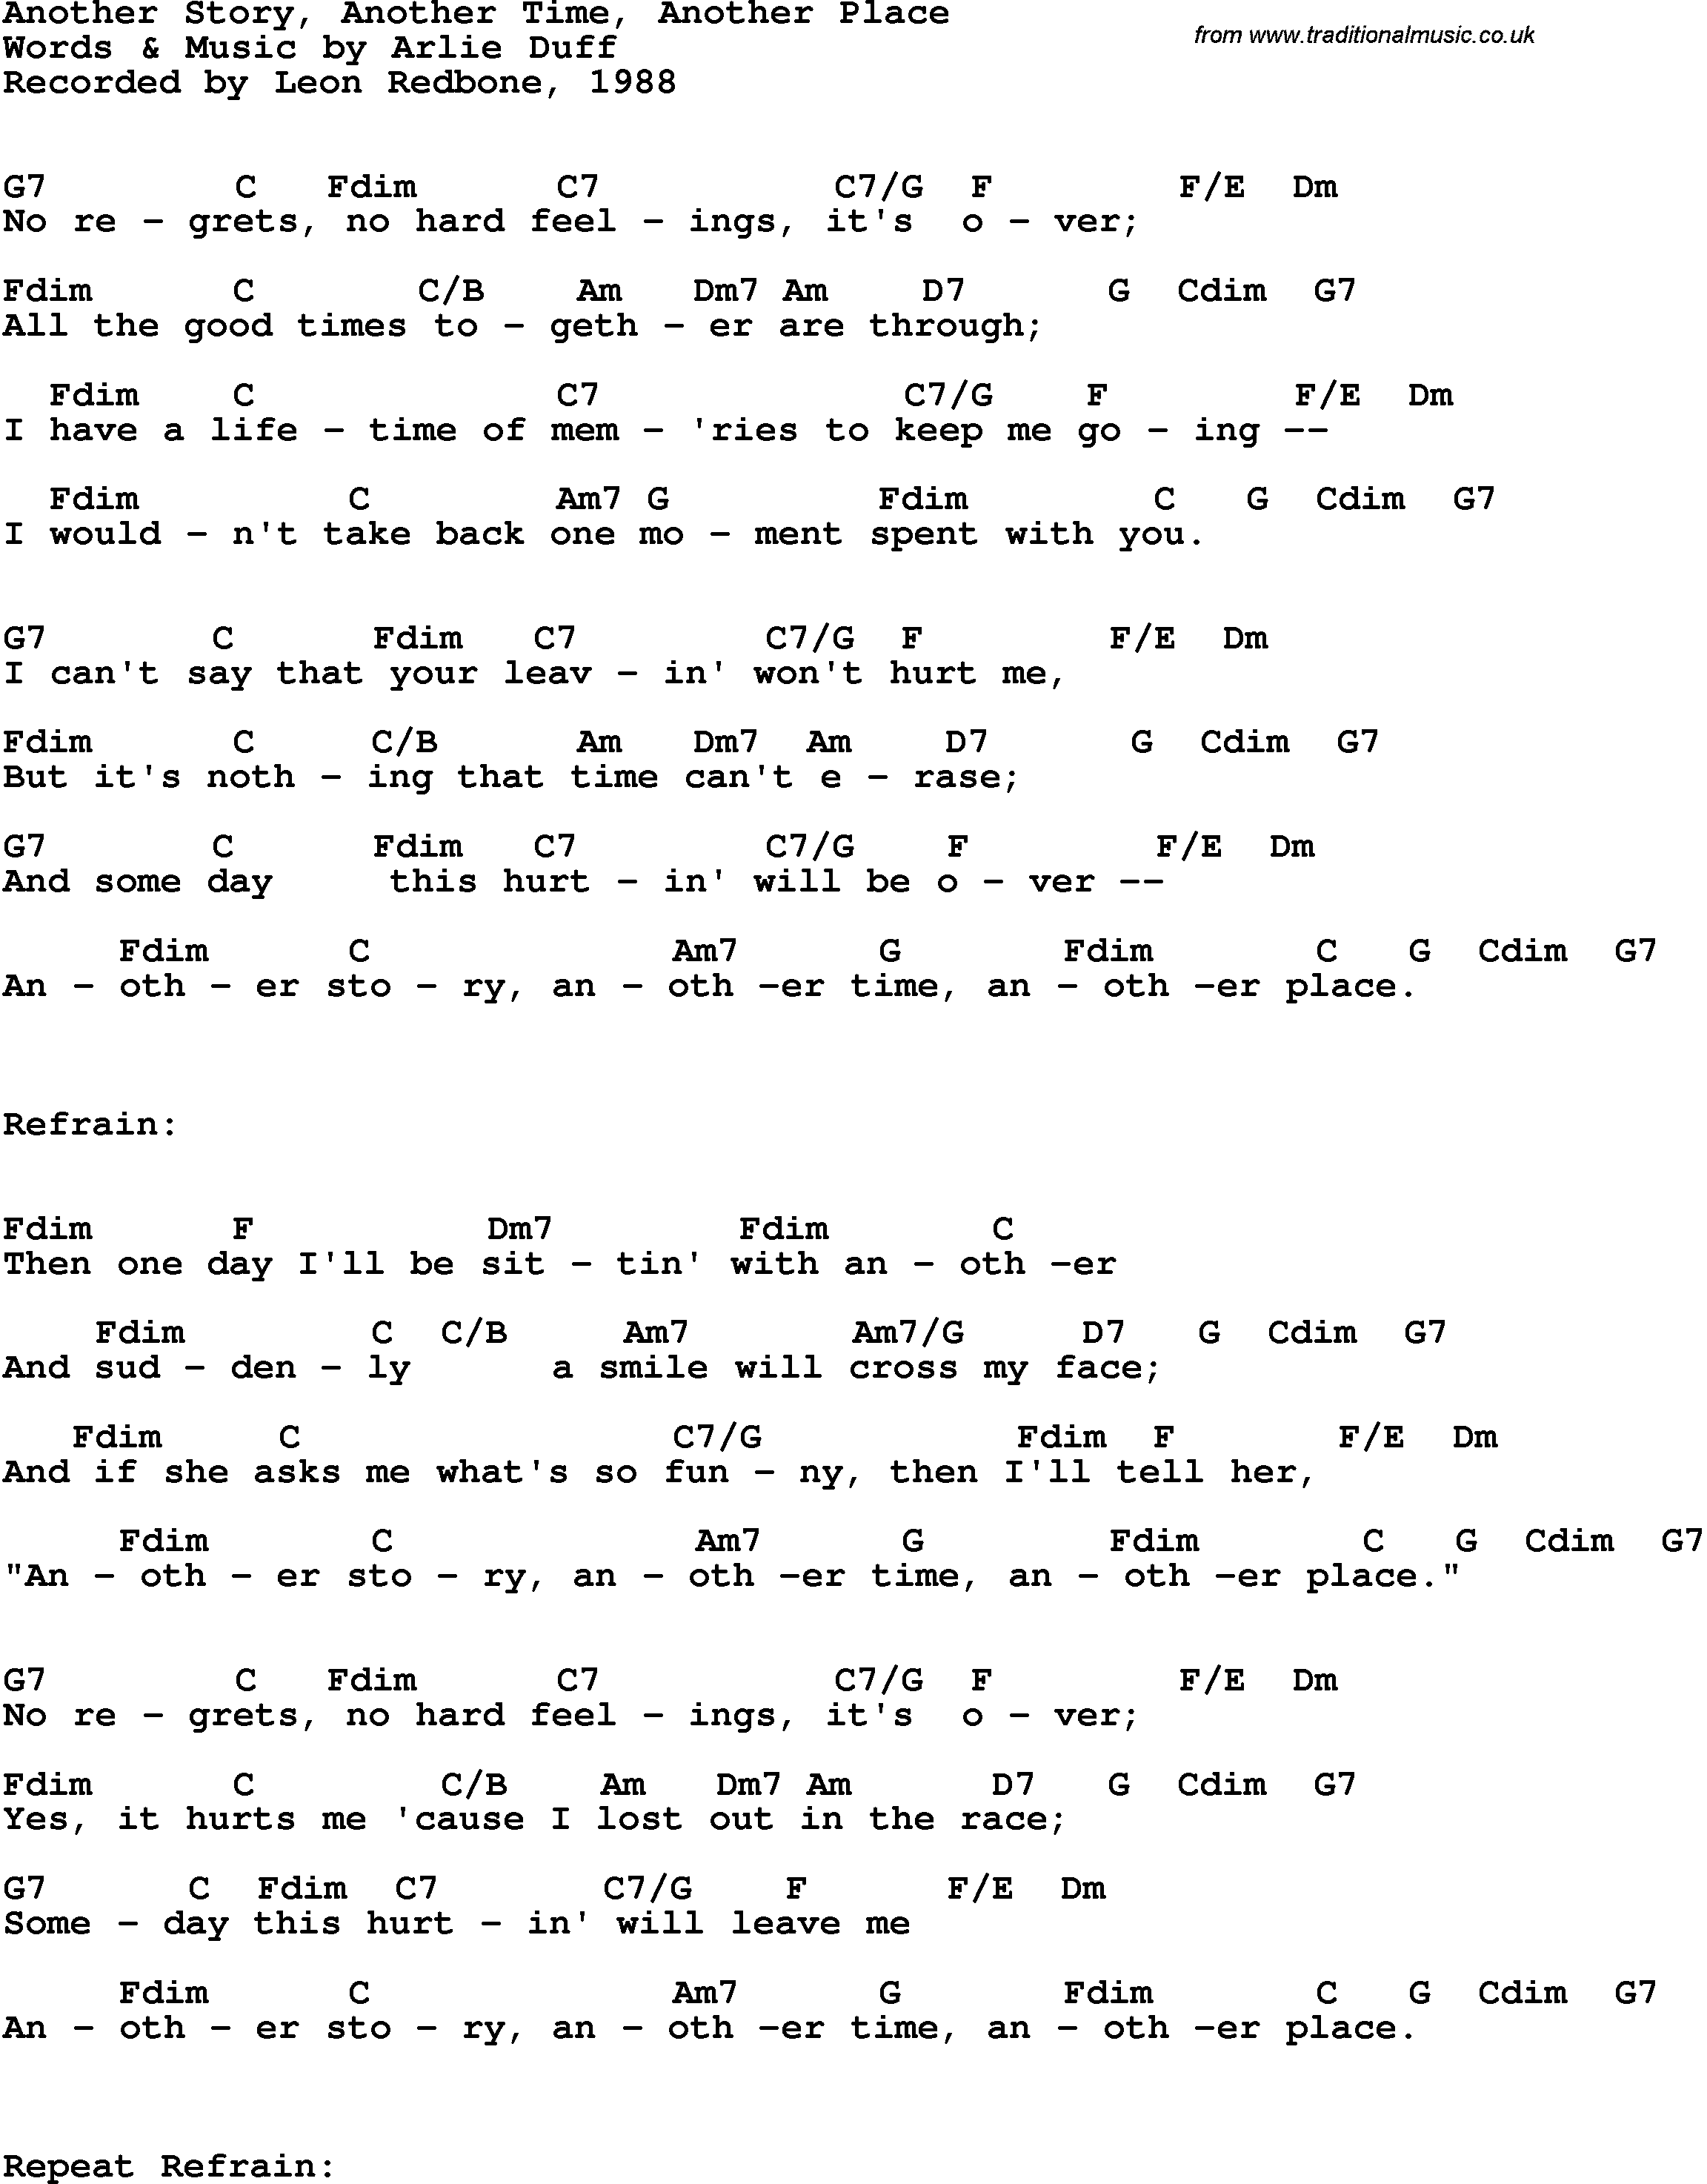 Song lyrics with guitar chords for another story another for Songs from 1988 uk